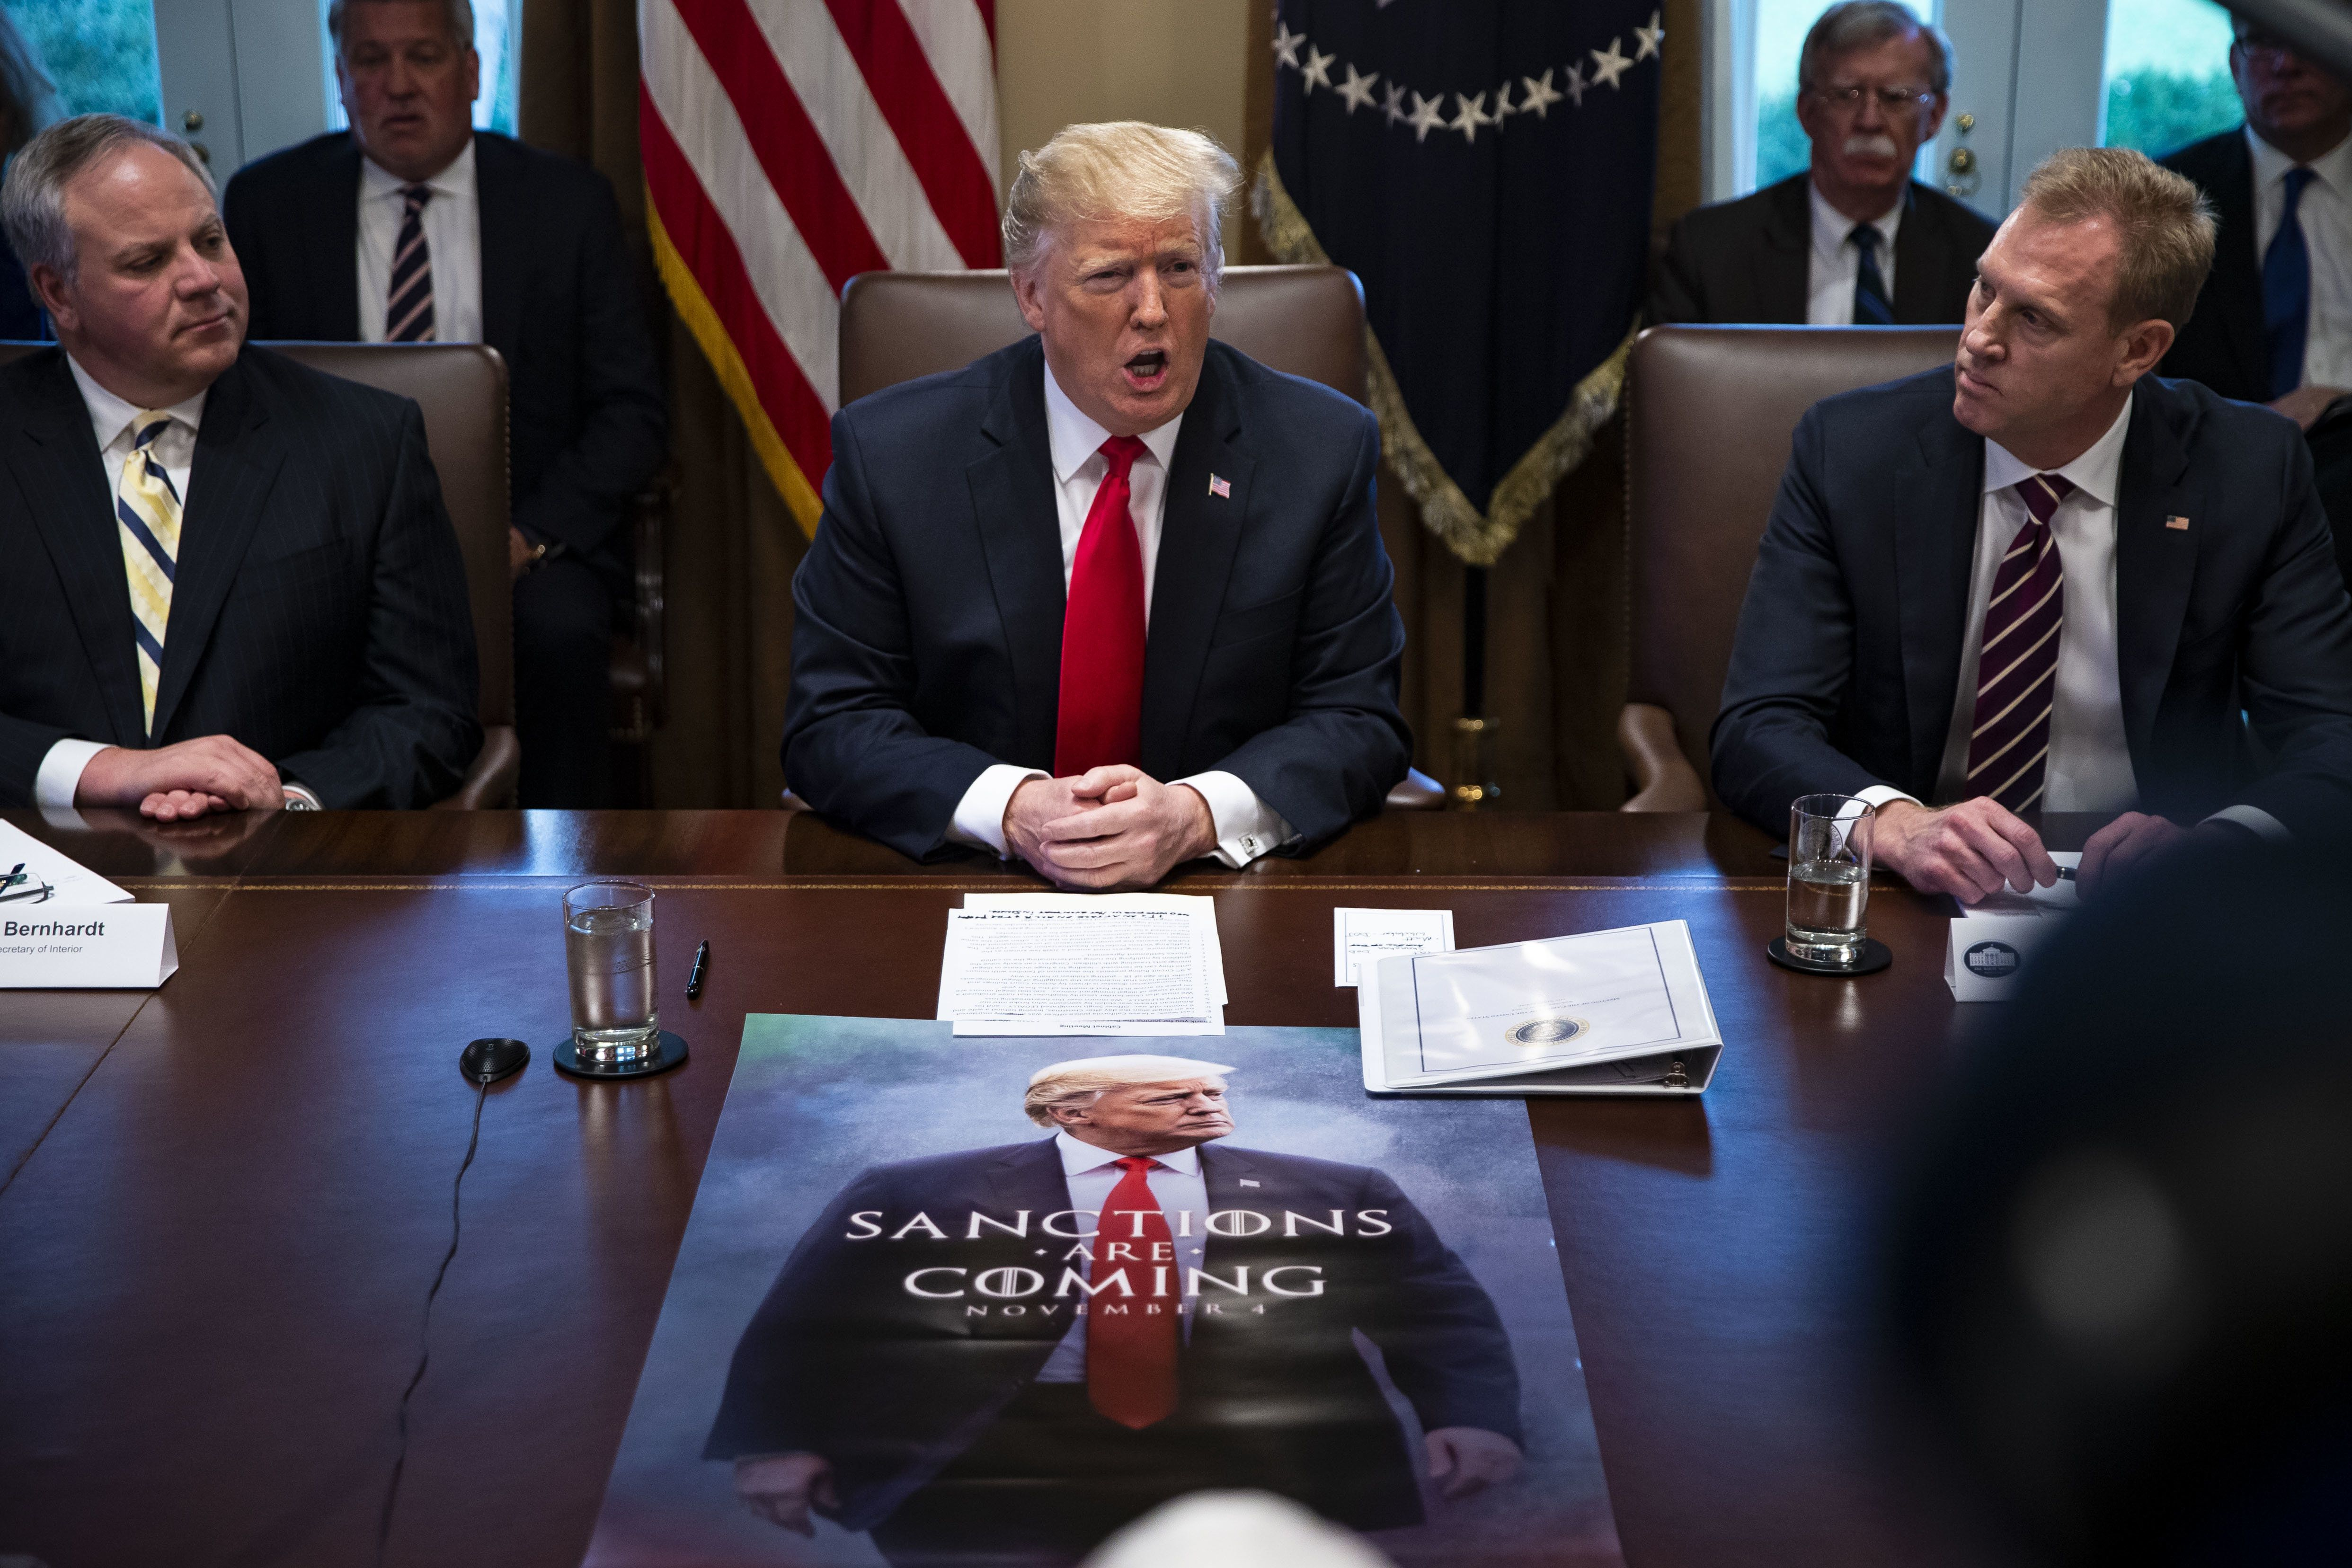 Donald Trump Debuts 'Game Of Thrones'-Themed Poster At Cabinet